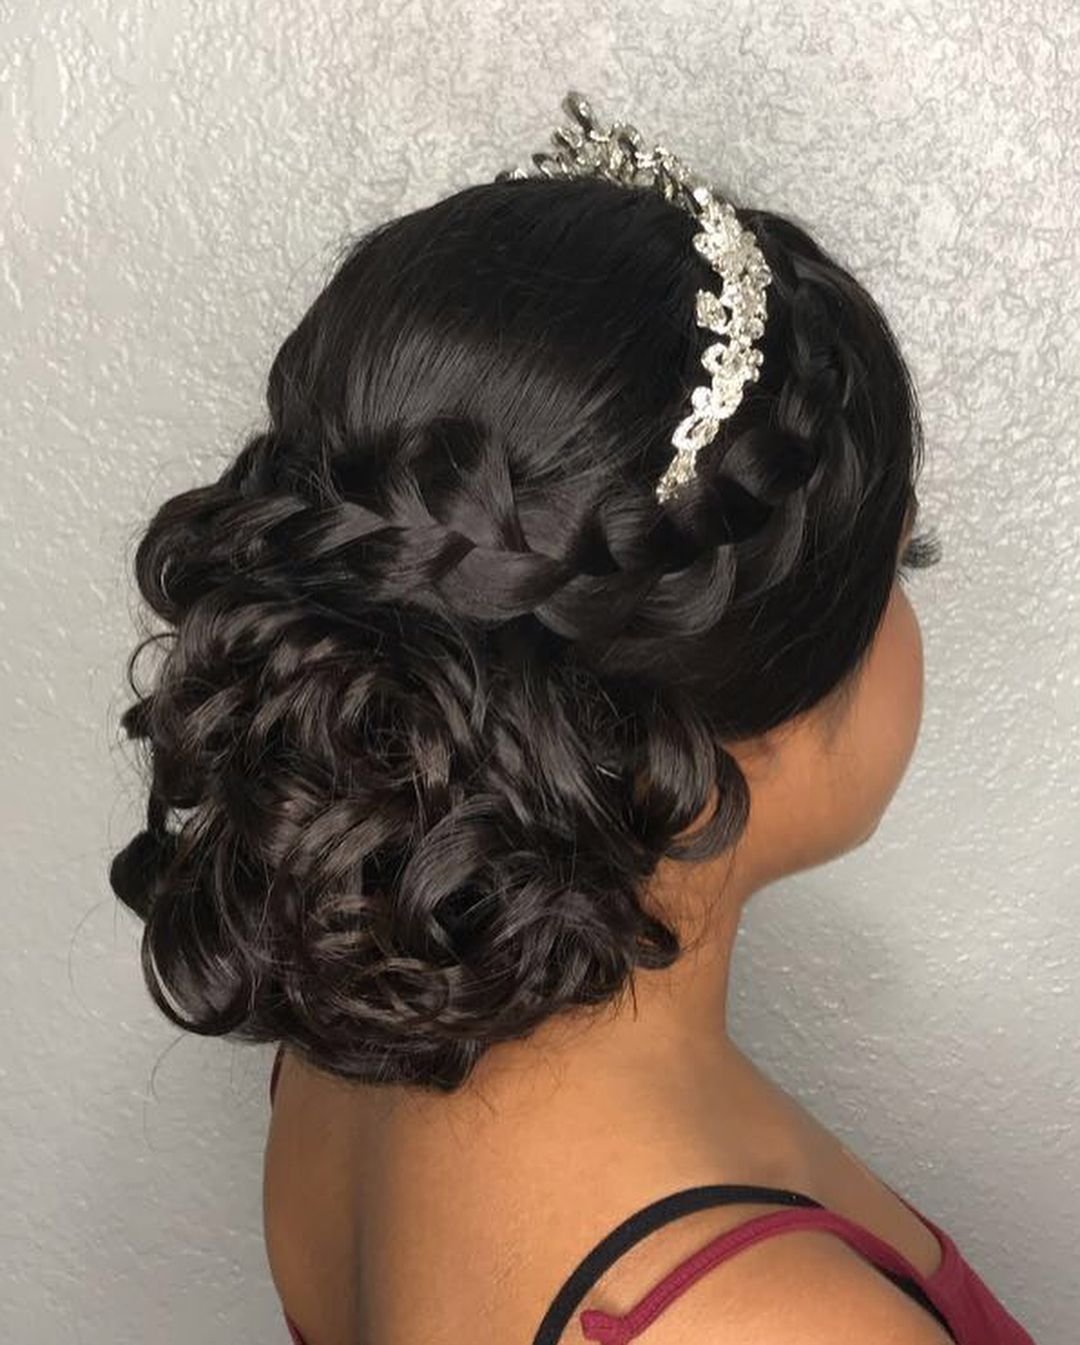 Quince Updo! Love Adding A Braid To Any Hairstyle #quince